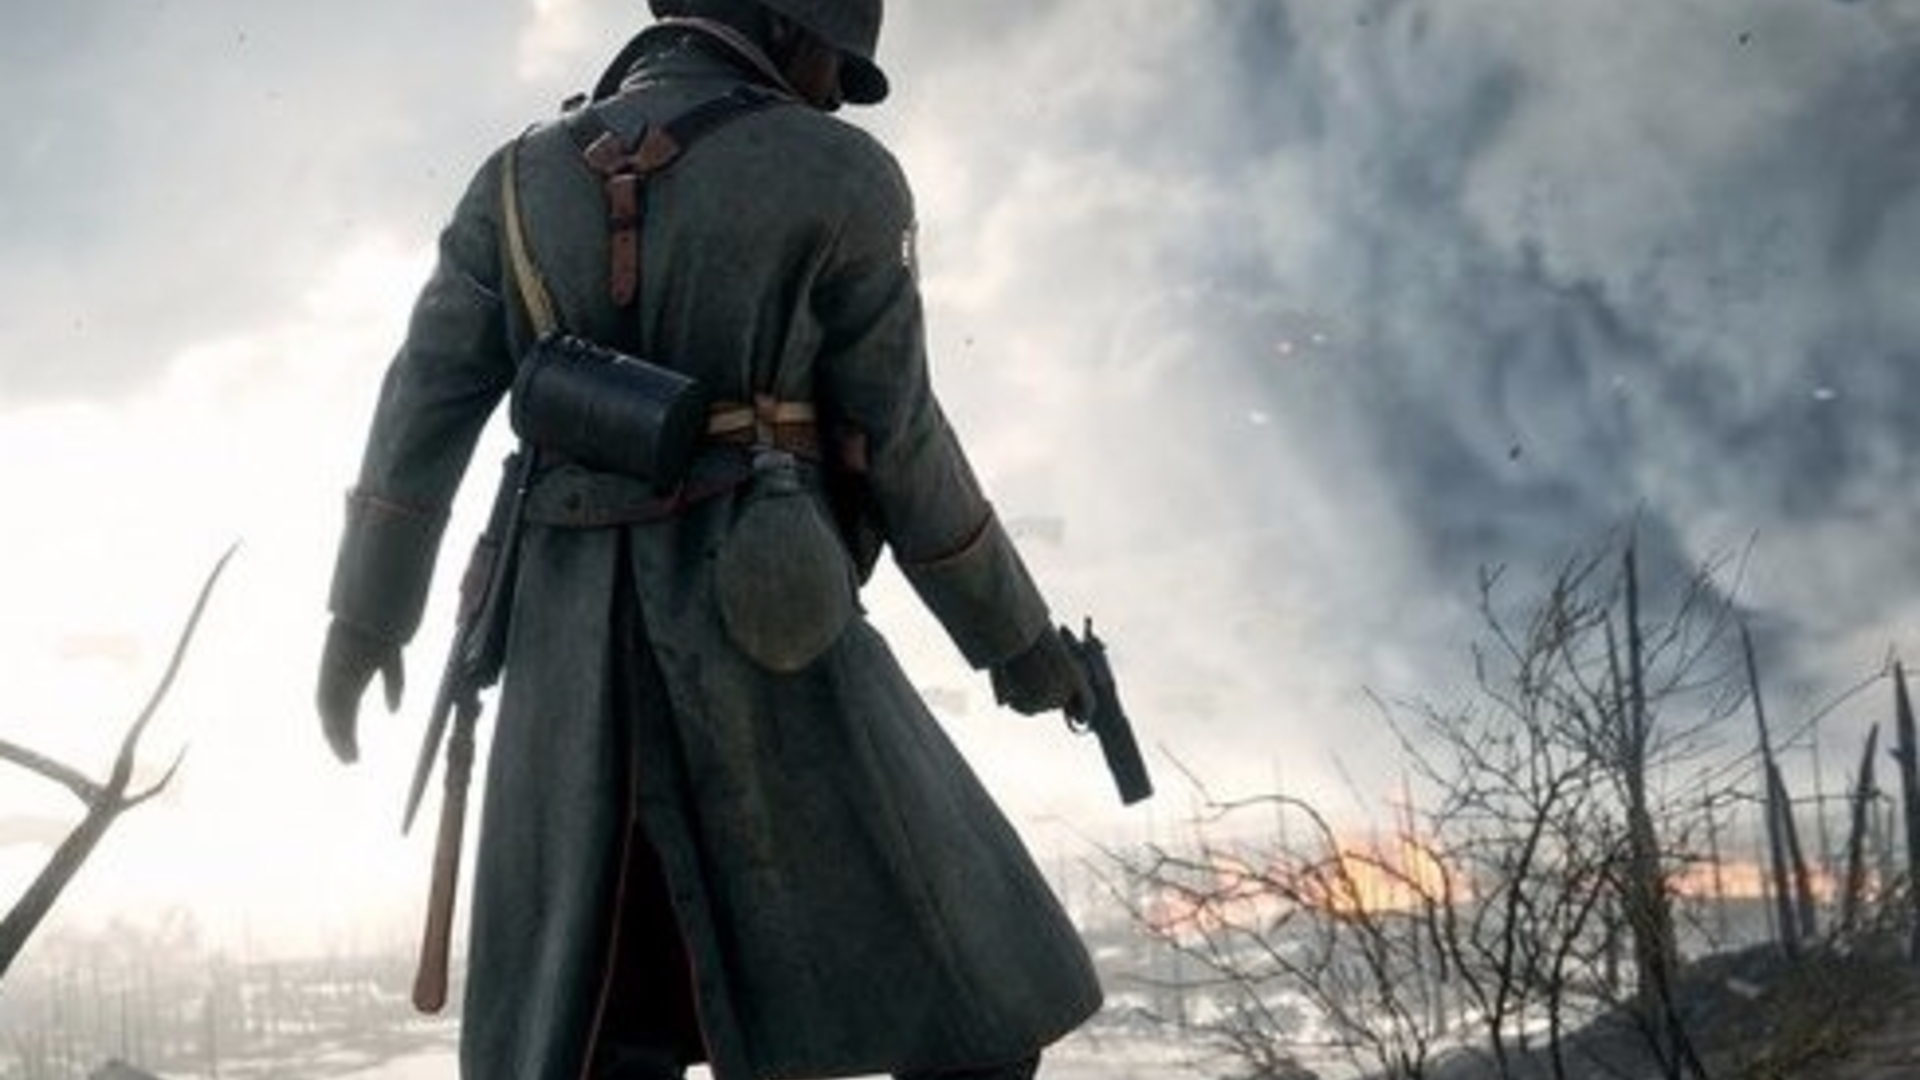 Here are your Battlefield 1 PC system requirements